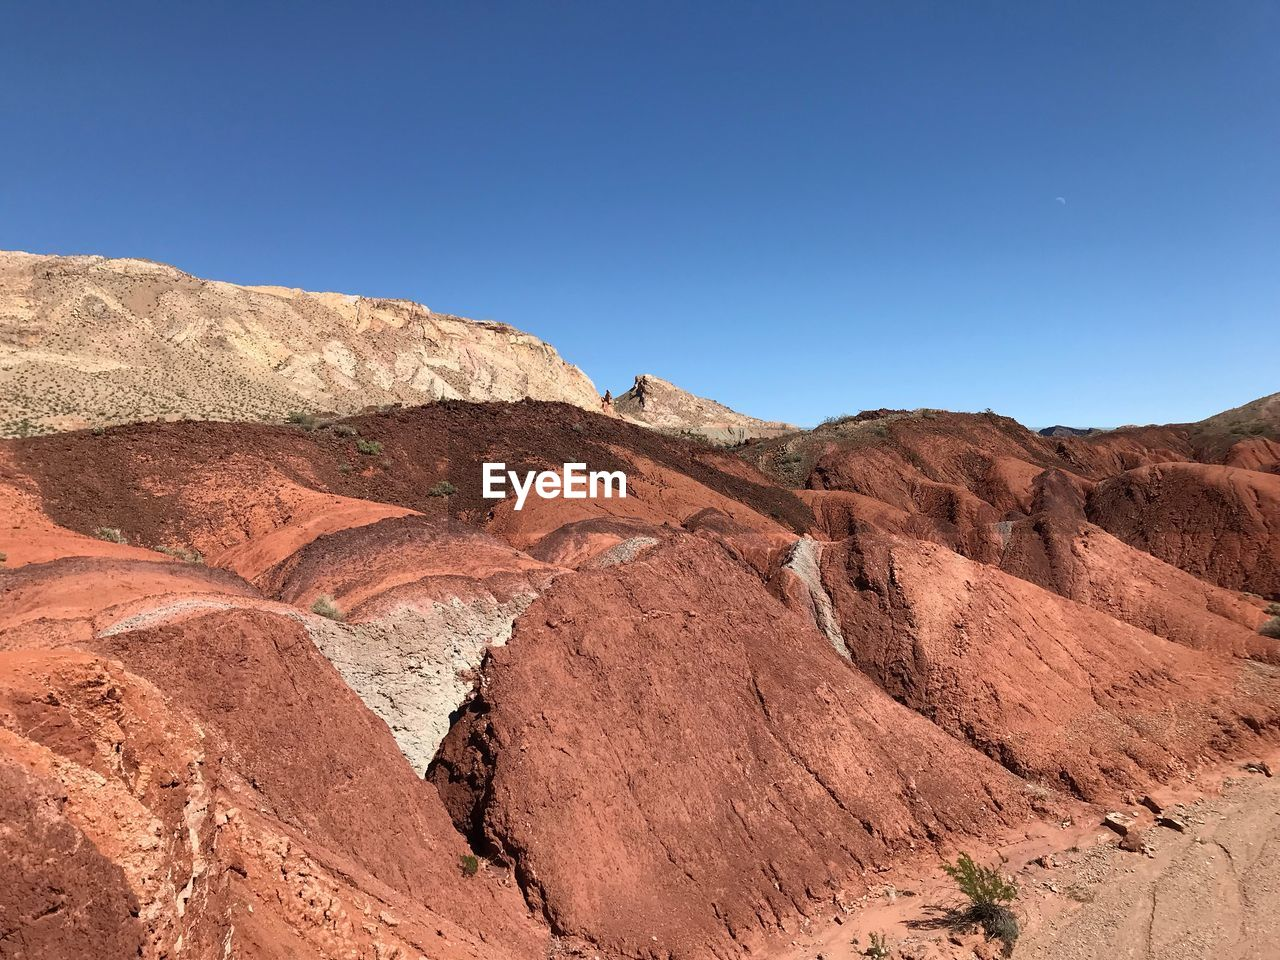 nature, clear sky, arid climate, desert, tranquility, tranquil scene, geology, landscape, scenics, day, beauty in nature, outdoors, rock - object, physical geography, mountain, no people, sunlight, travel destinations, blue, sky